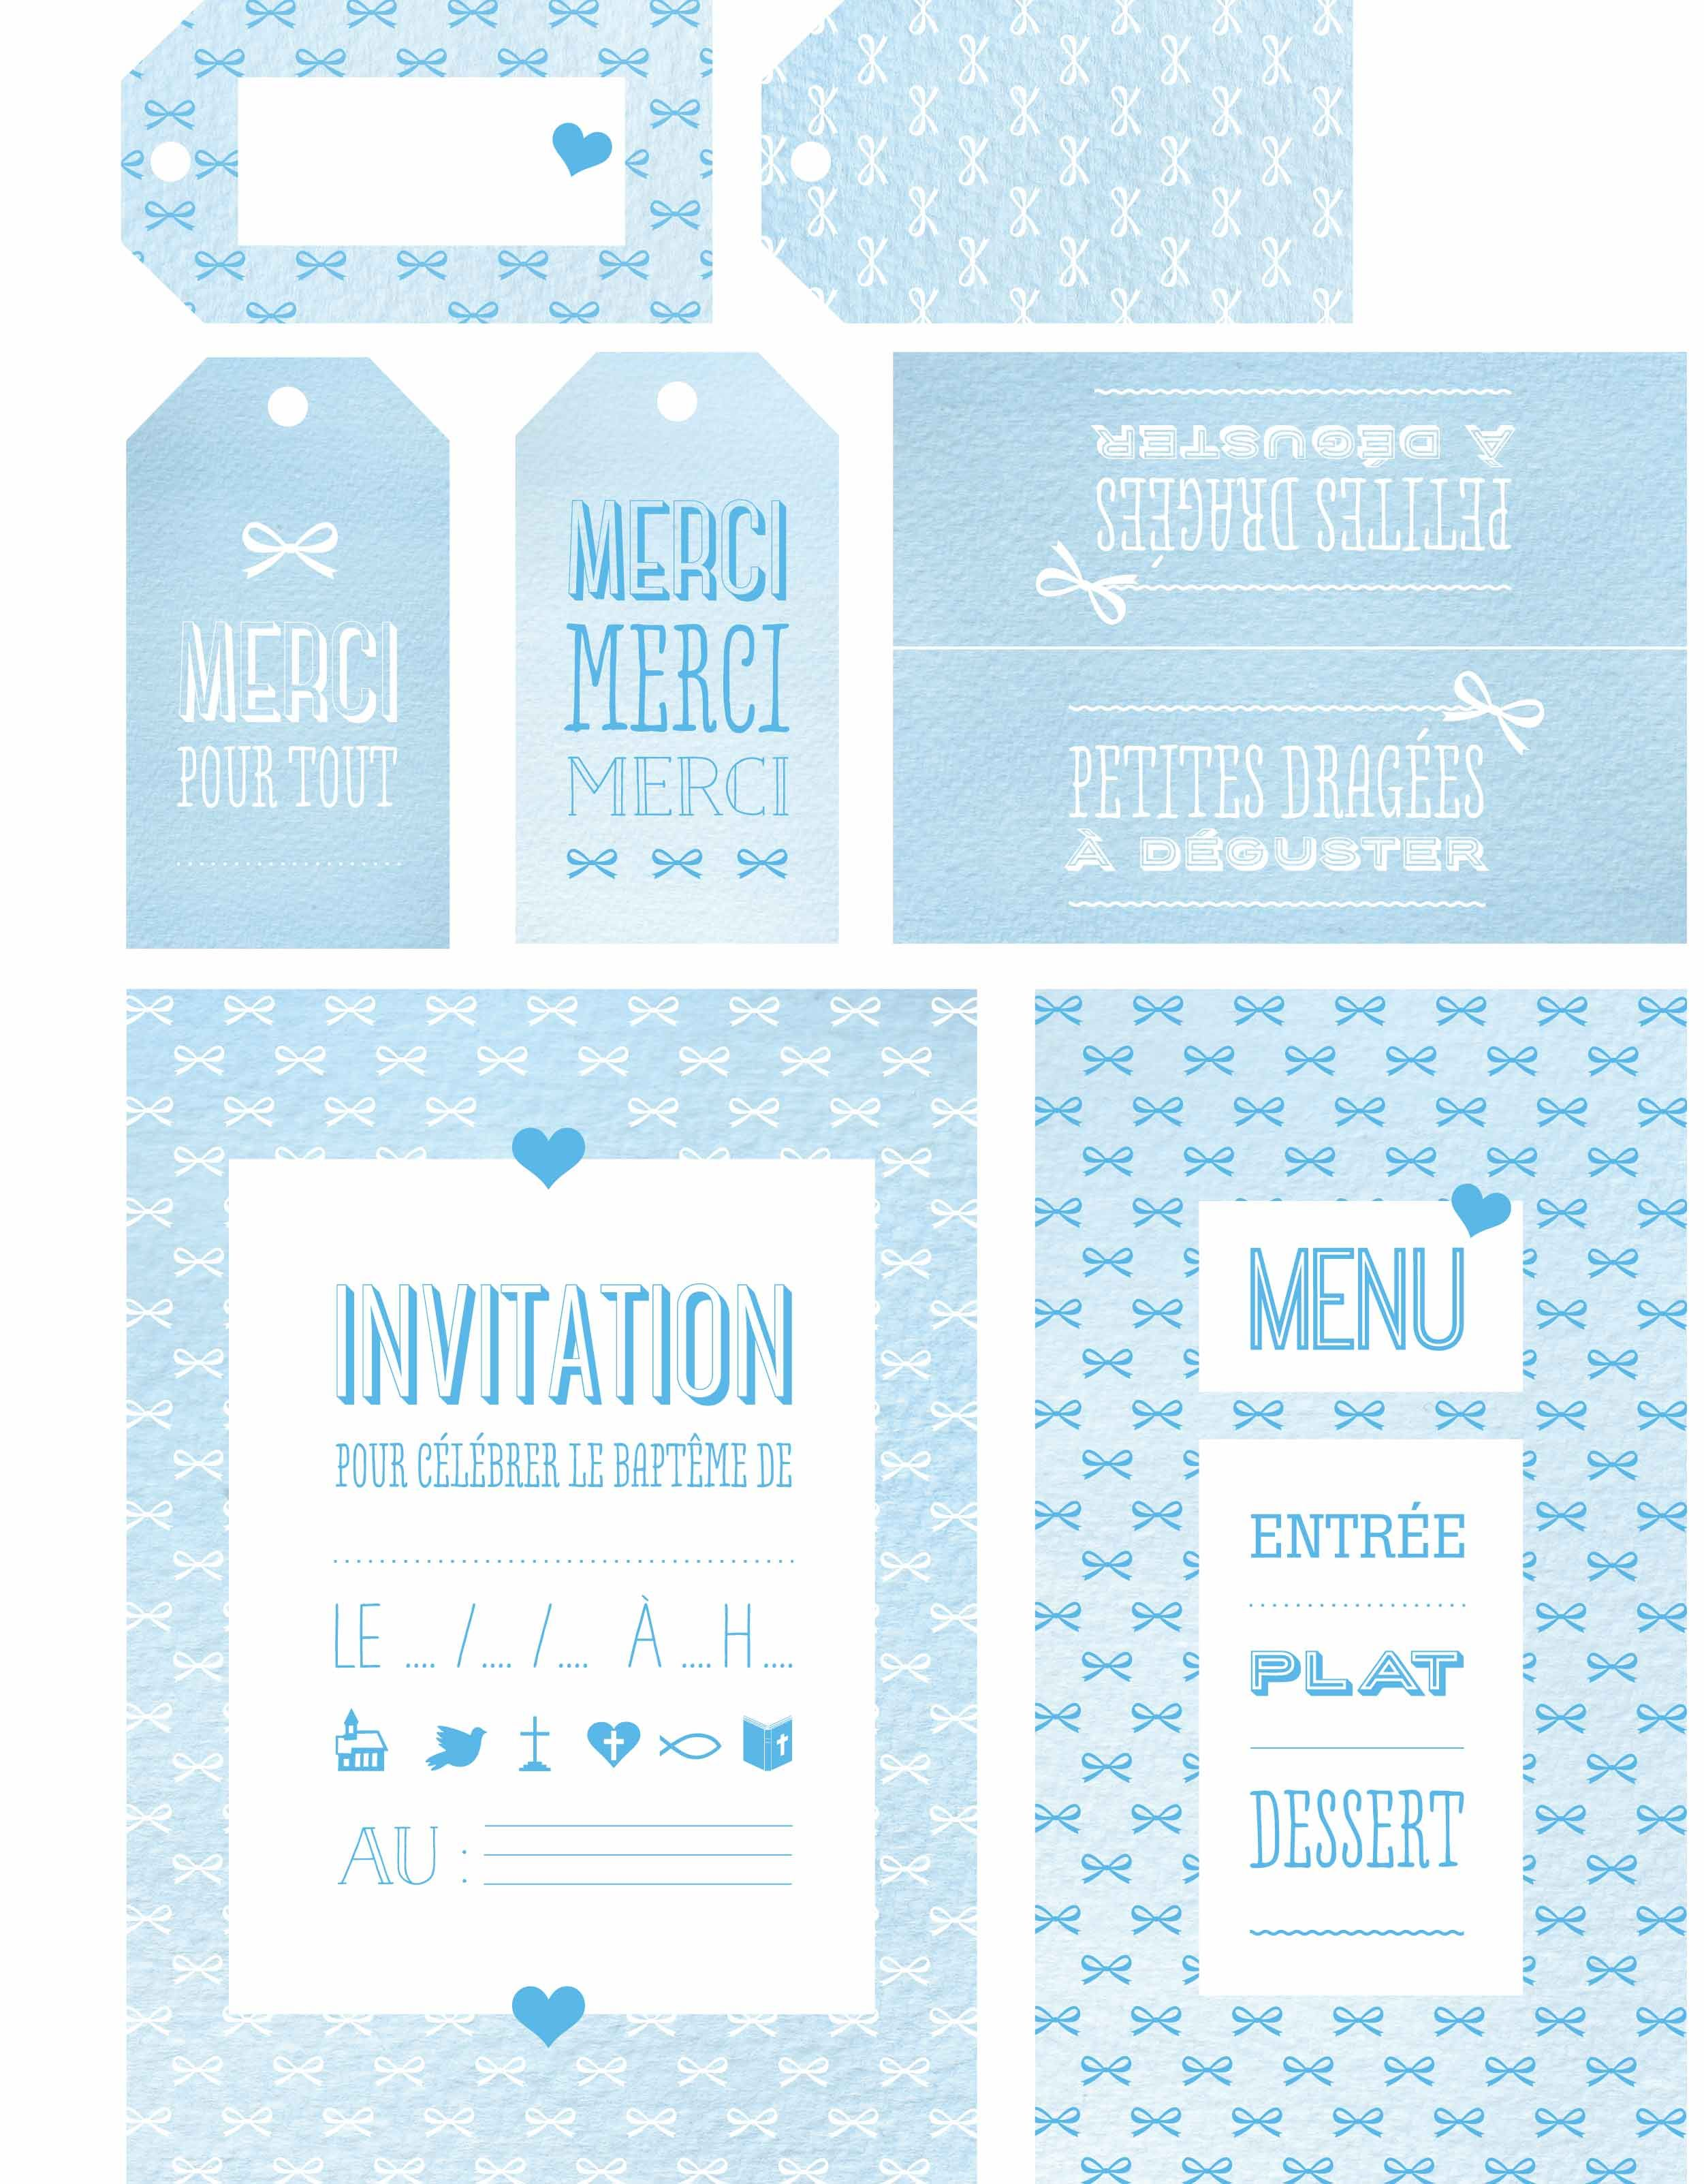 bapt me nos cartes d invitation bricolage pinterest etiquette bapteme minis et bleu. Black Bedroom Furniture Sets. Home Design Ideas